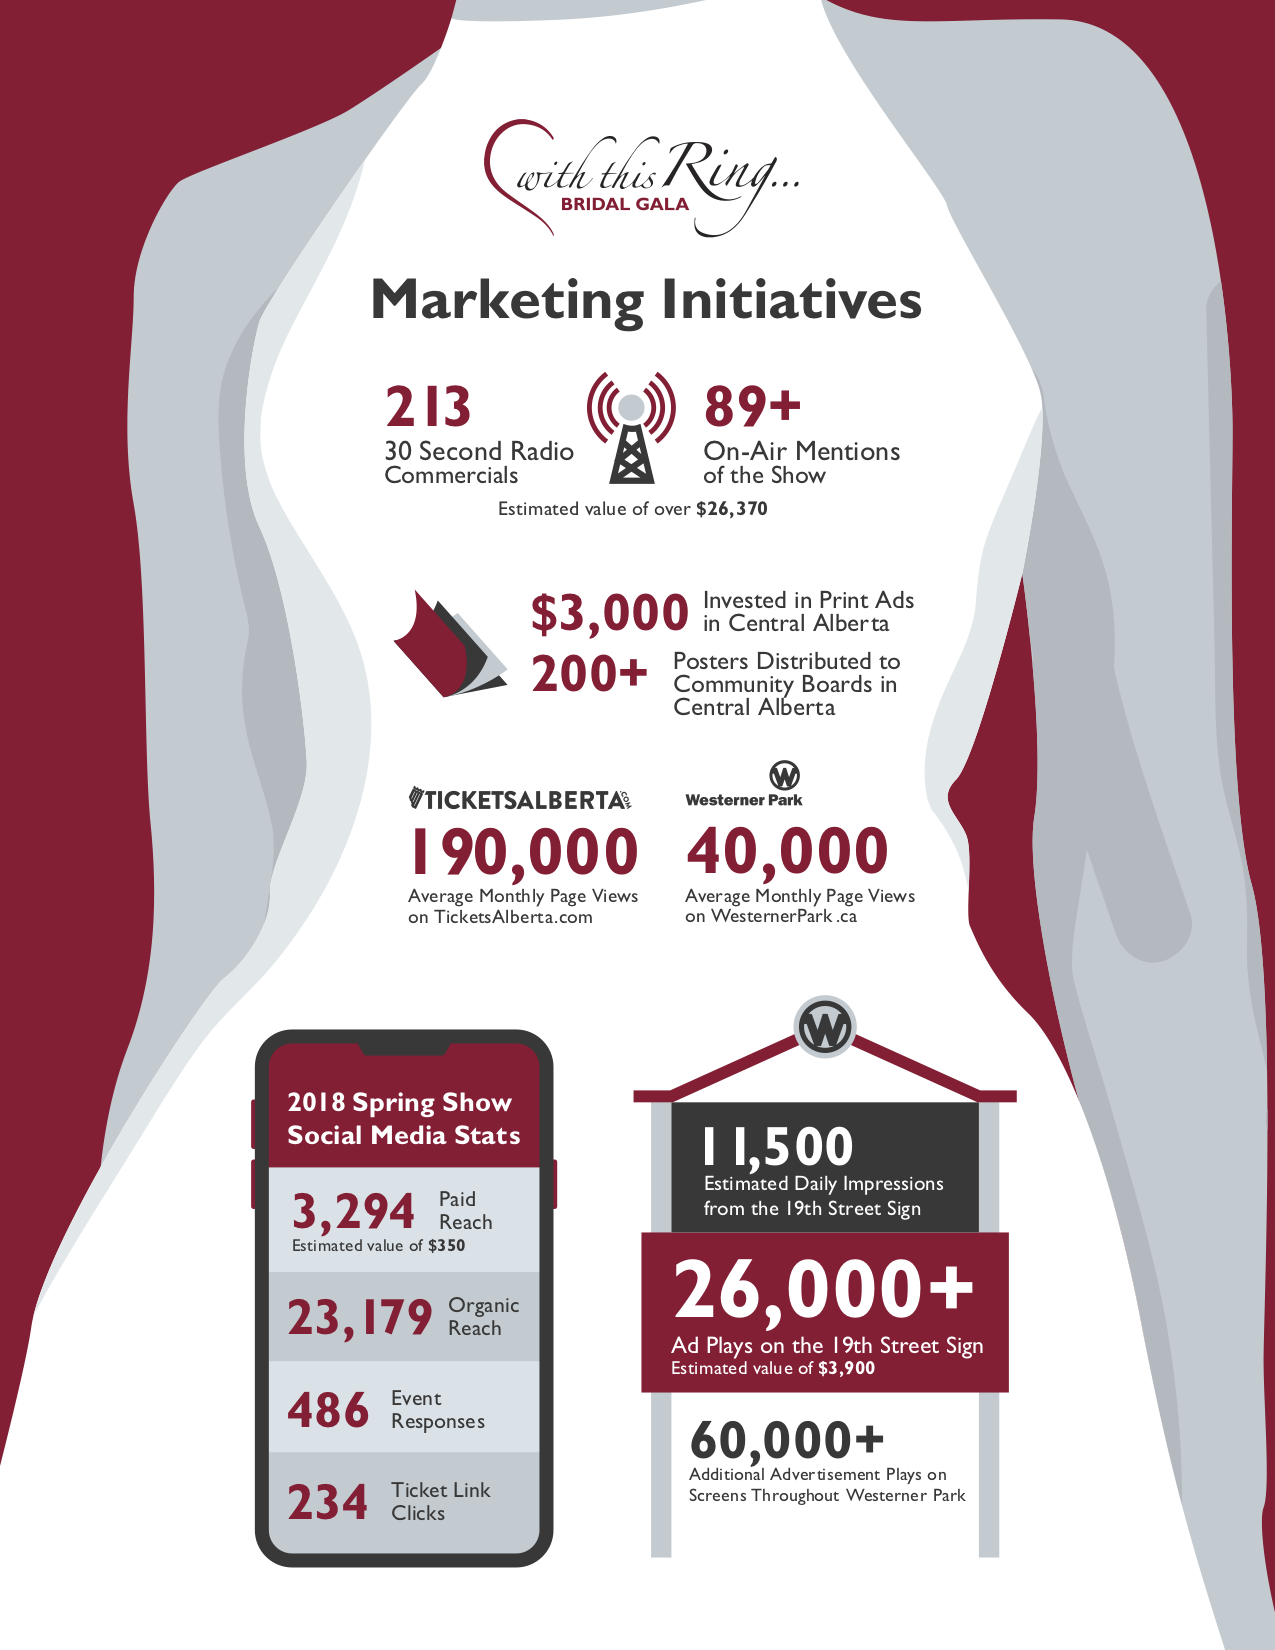 With This Ring...Infographic of Exhibitors Benefits